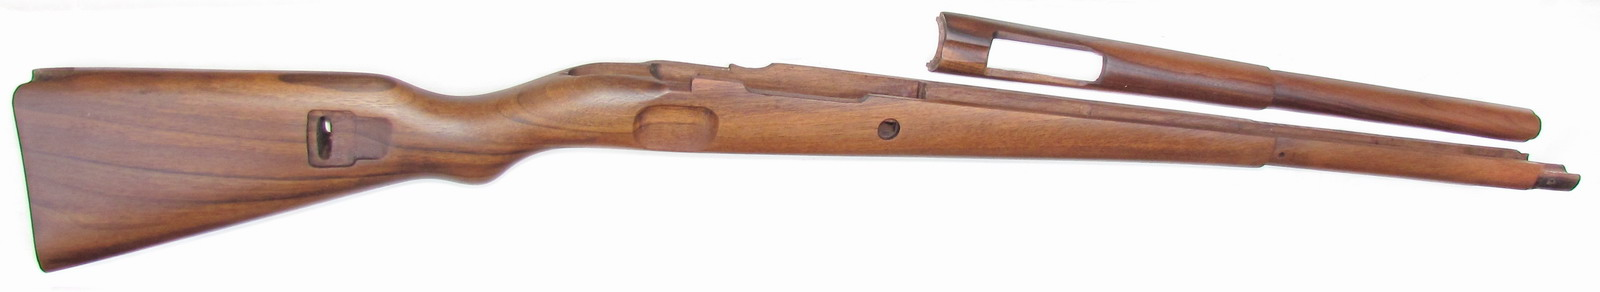 PPHU Fox - Wooden gun stocks